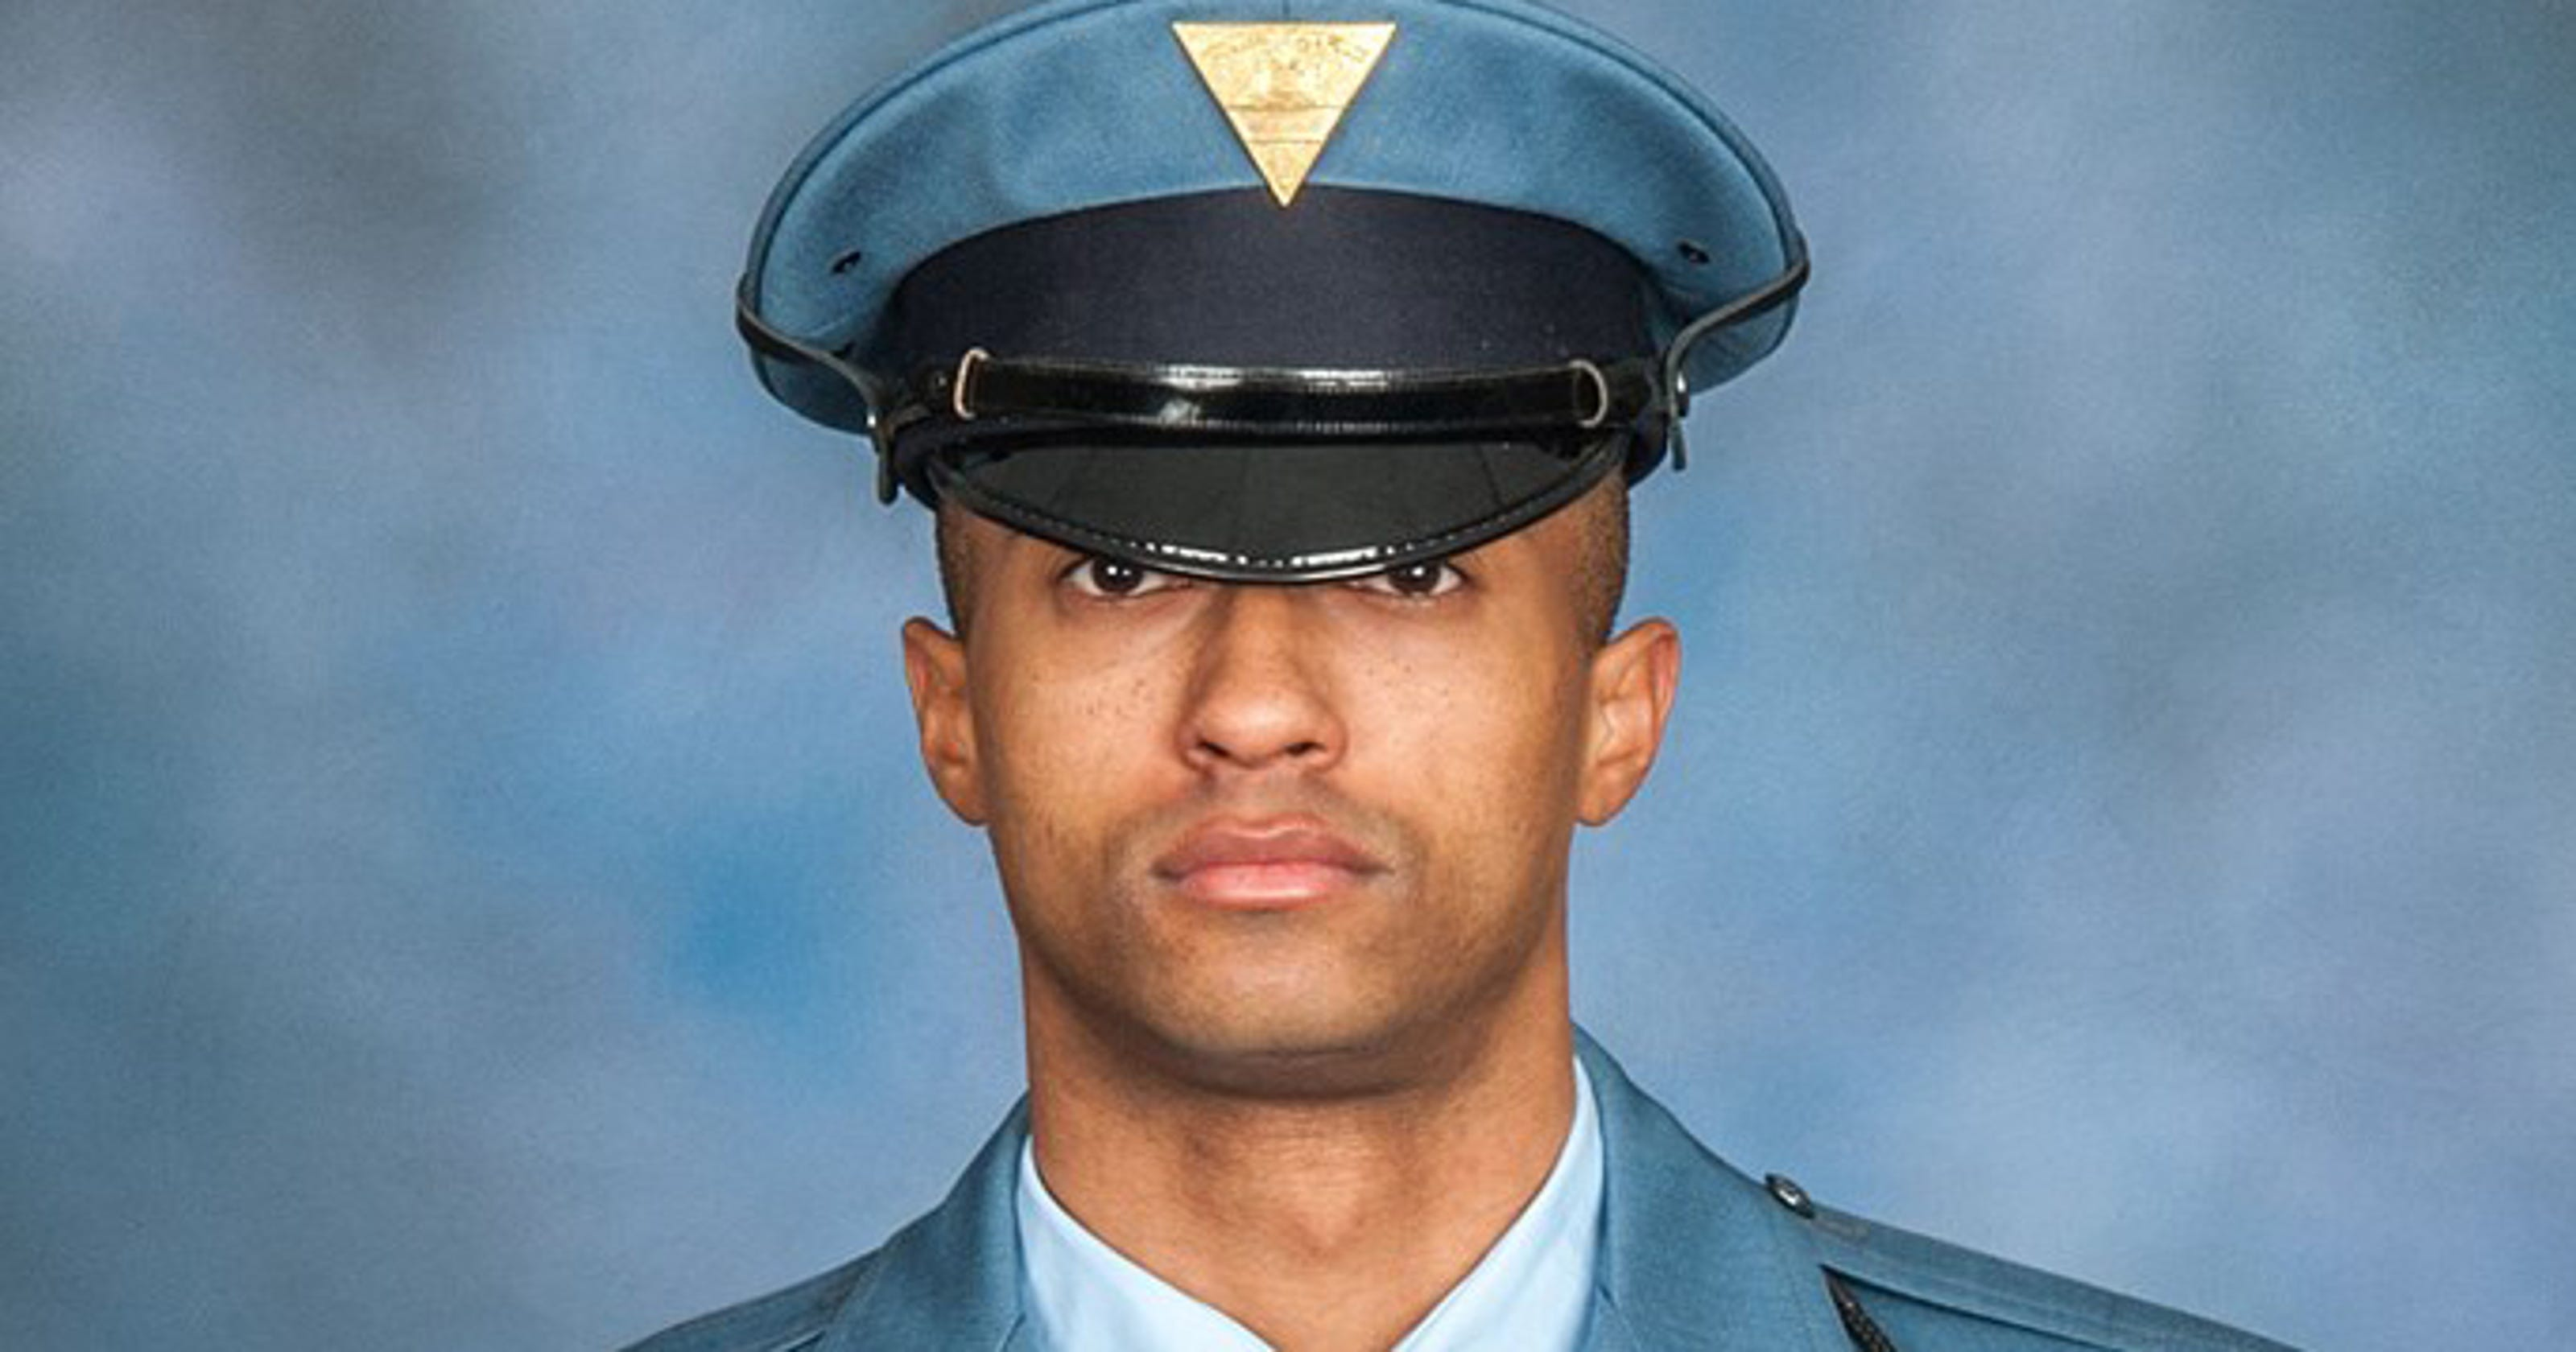 State trooper dies in head-on crash on Route 55, 2nd driver identified